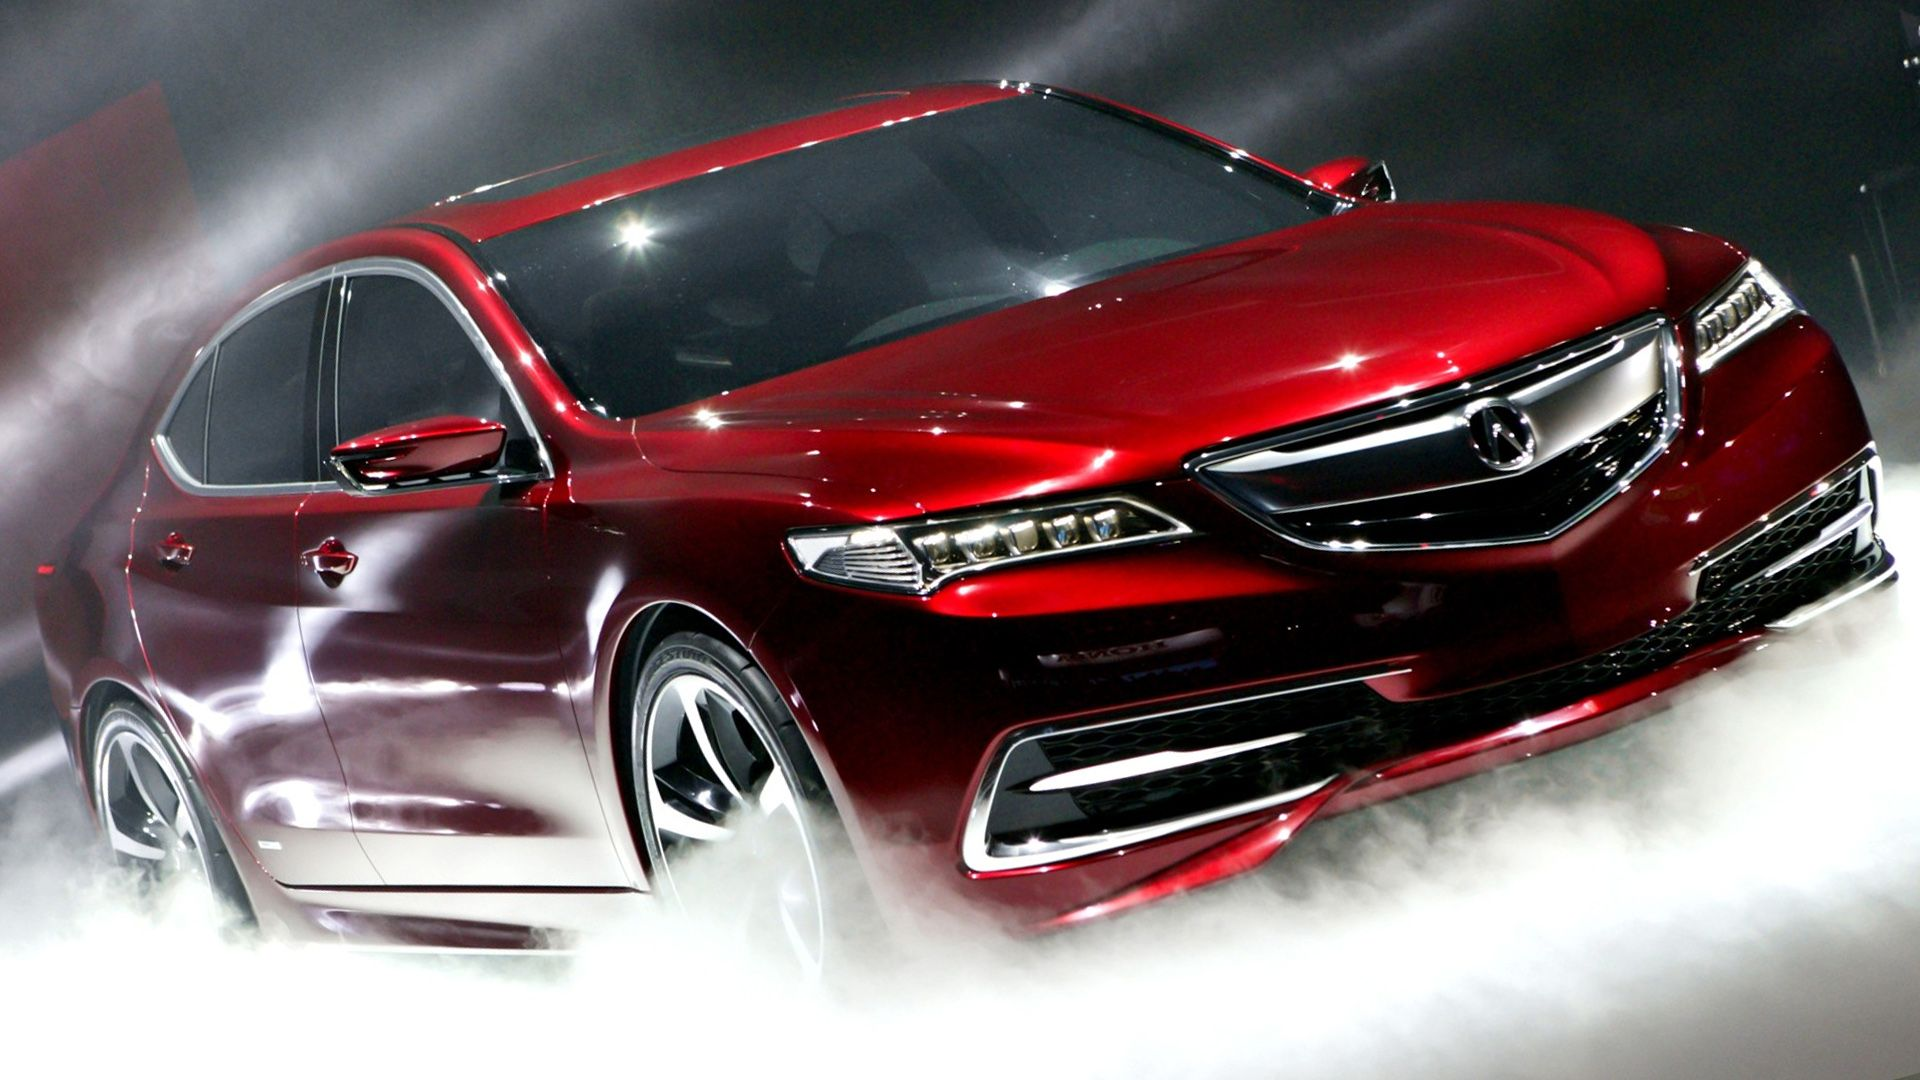 2018 acura tlx release date atozfinanceinfo leading news website. Black Bedroom Furniture Sets. Home Design Ideas